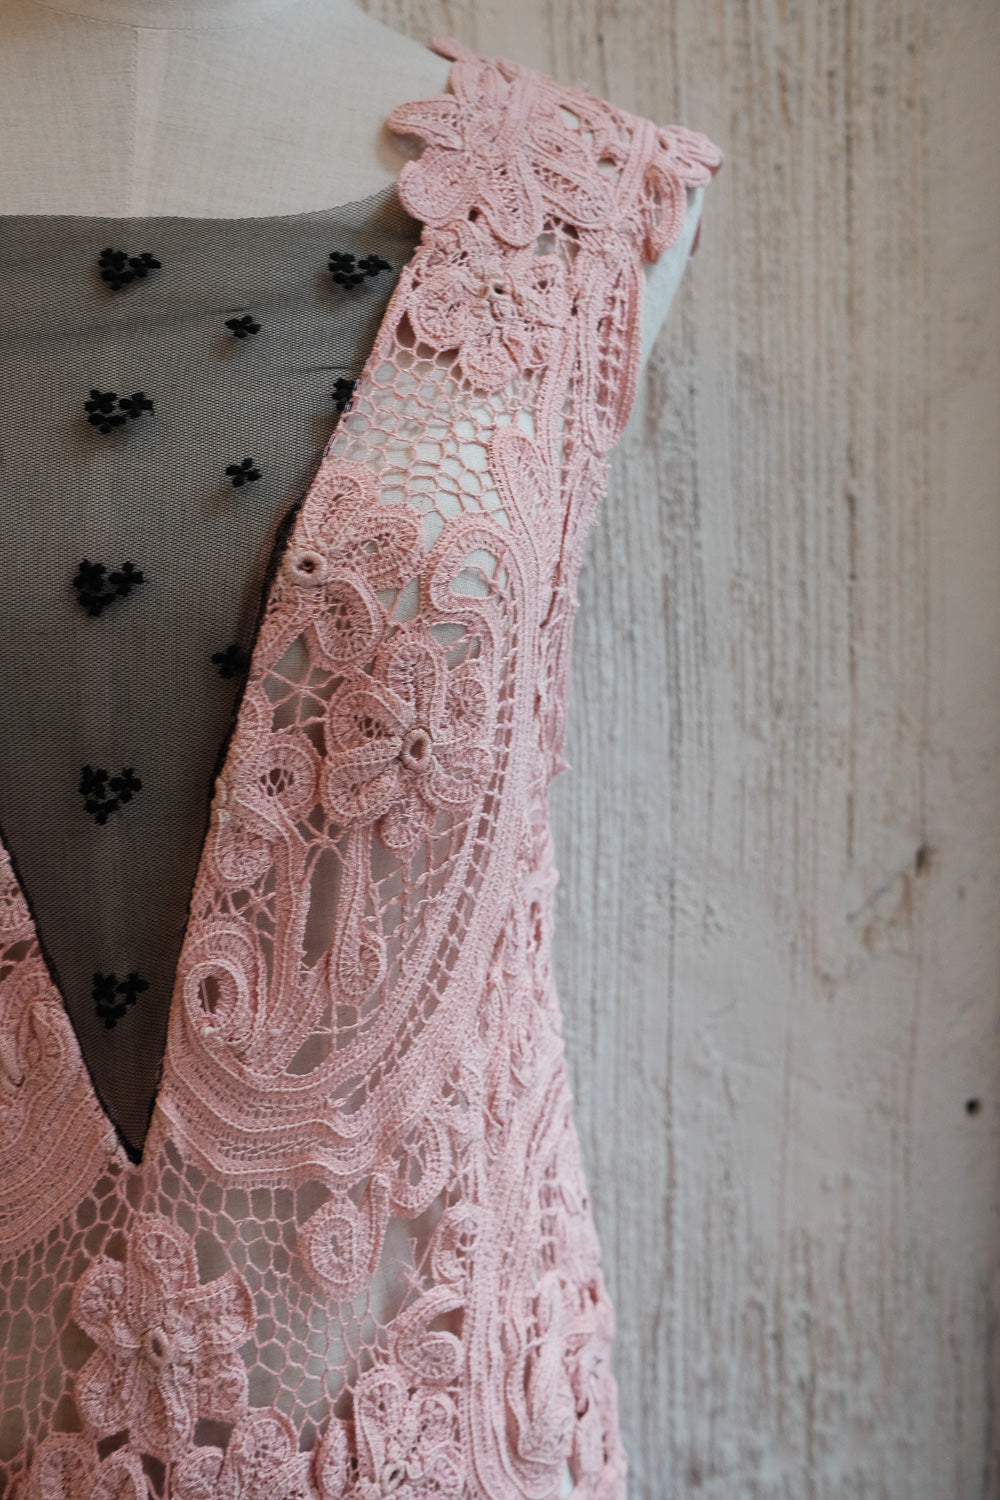 handmade lace sleeveless bias cut gown